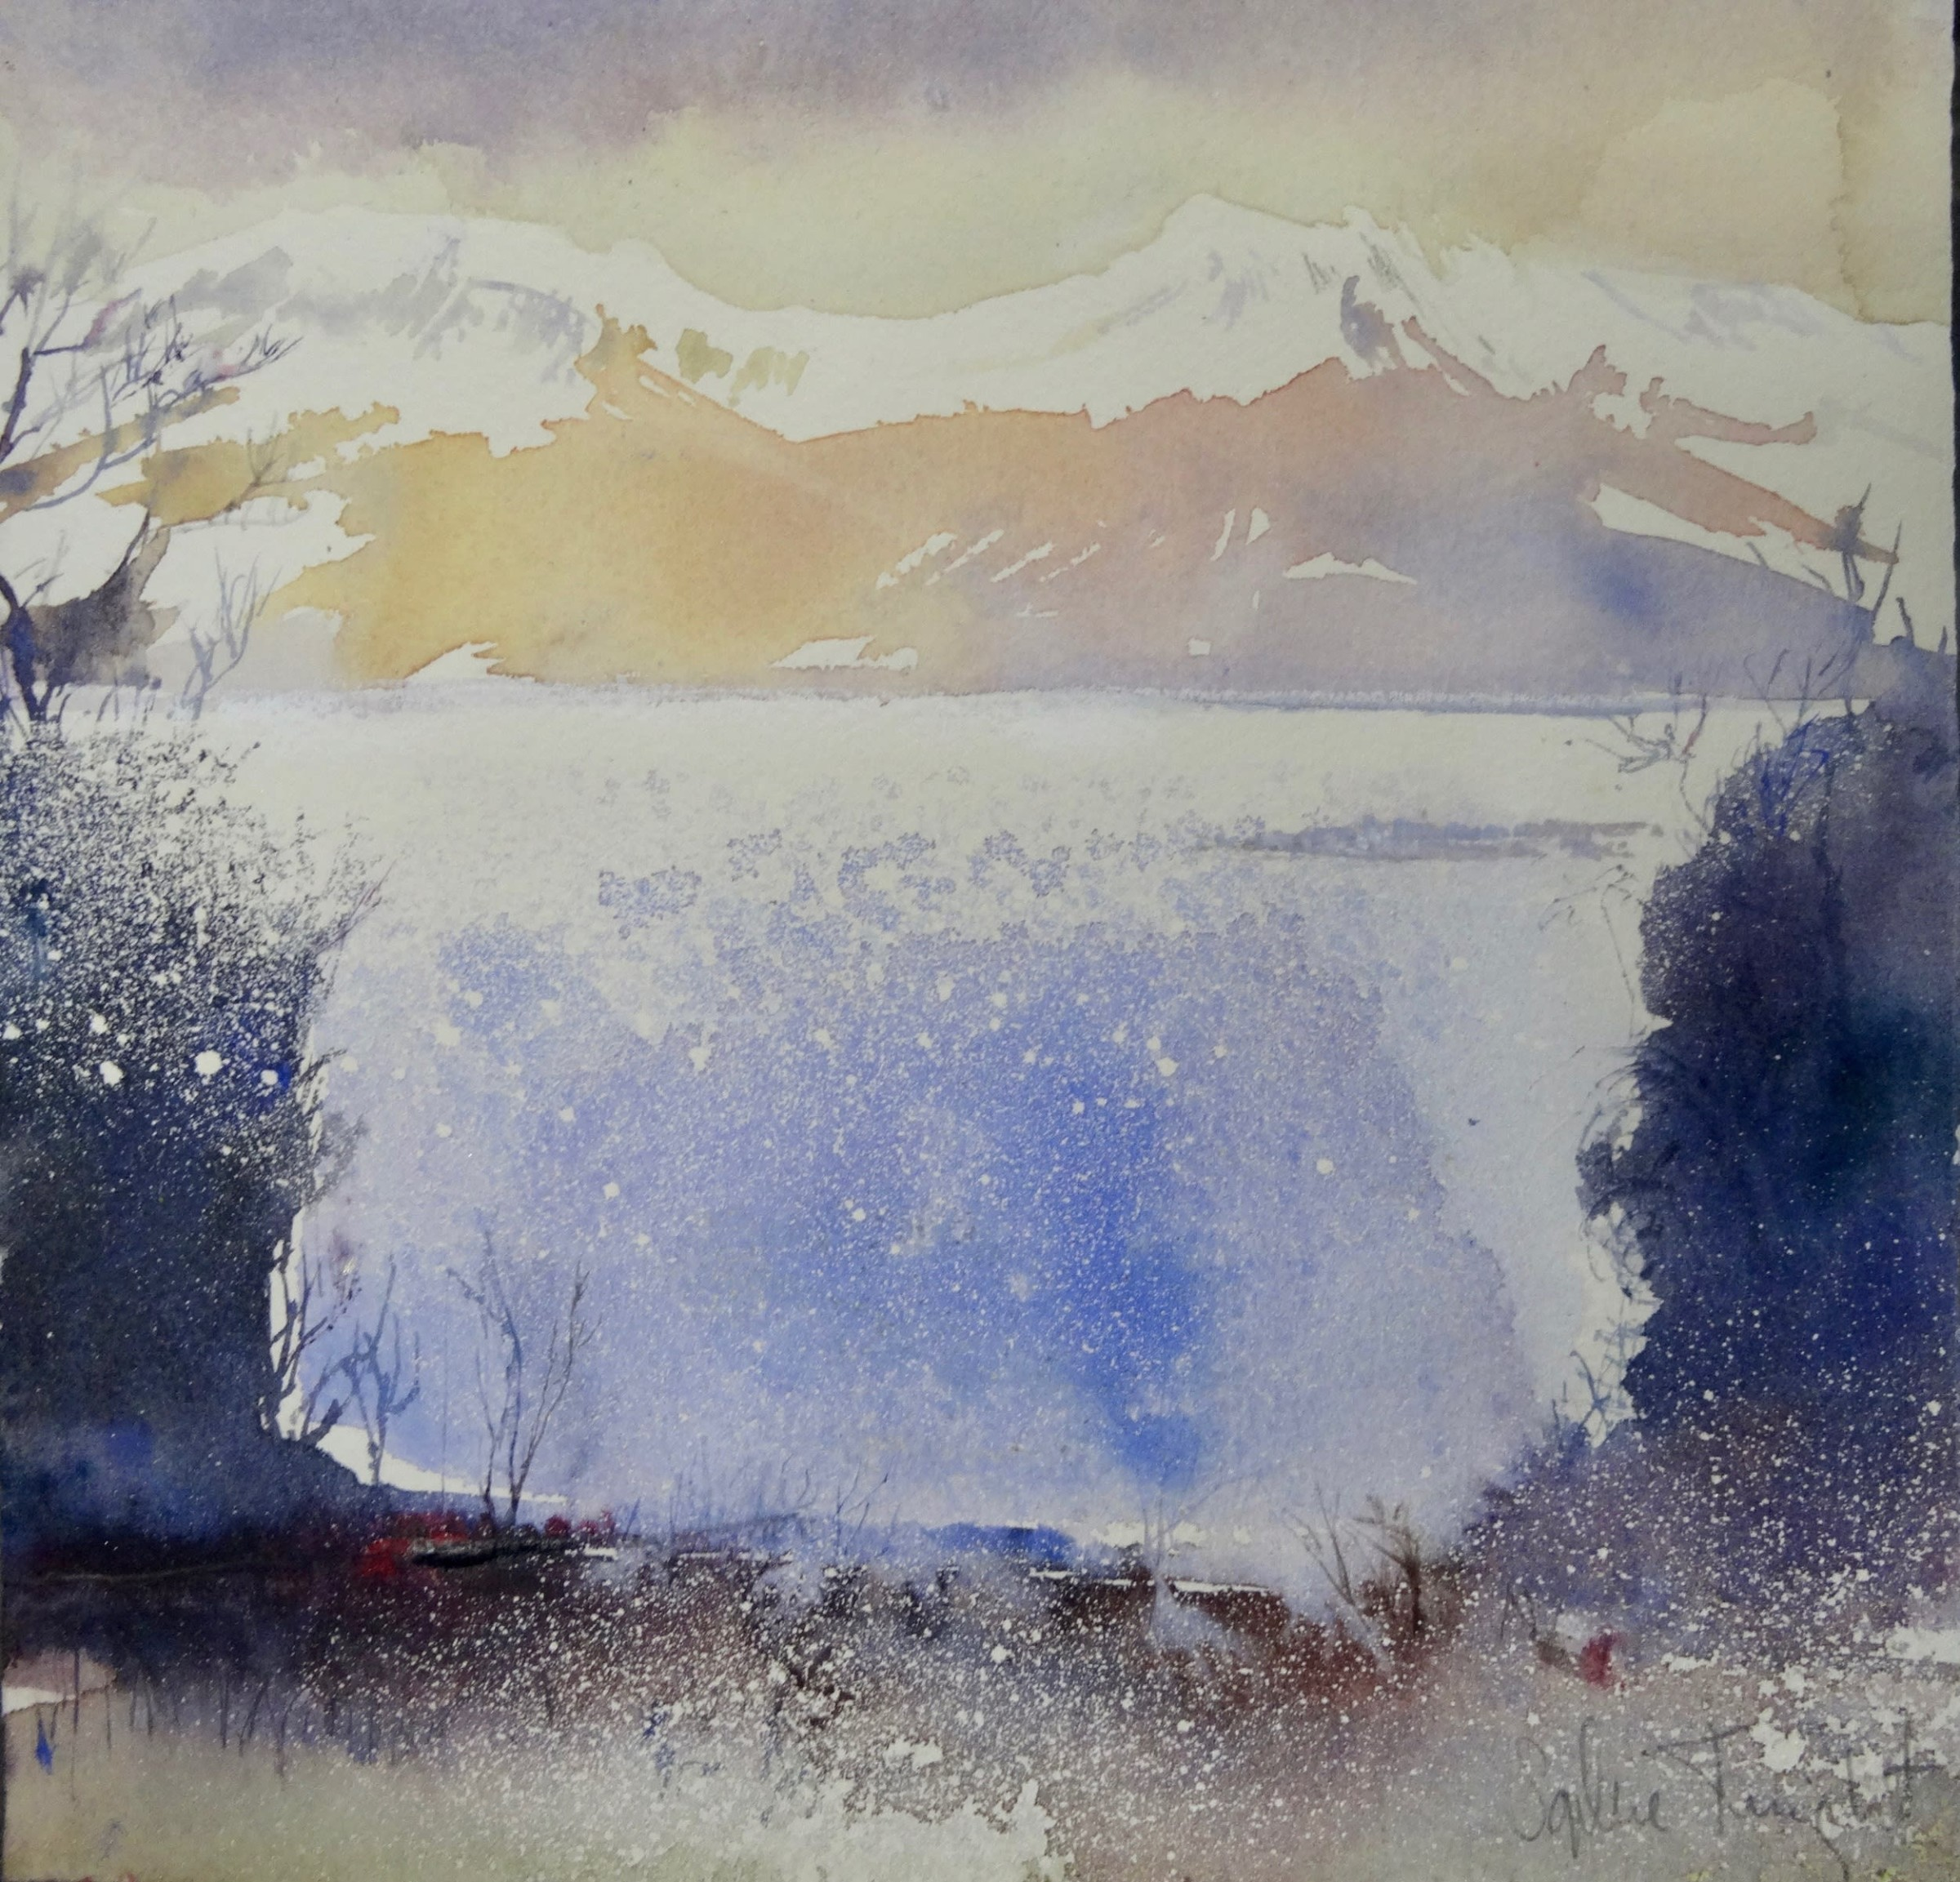 """<span class=""""link fancybox-details-link""""><a href=""""/artists/77-sophie-knight/works/12757-sophie-knight-sunlight-on-snow-capped-mountains-and-loch-isle/"""">View Detail Page</a></span><div class=""""artist""""><span class=""""artist""""><strong>Sophie Knight</strong></span></div><div class=""""title""""><em>Sunlight on Snow Capped Mountains and Loch, Isle of Skye</em></div><div class=""""medium"""">watercolour</div><div class=""""dimensions"""">Frame: 28 x 26cm<br /> Artwork: 21 x 18cm</div><div class=""""price"""">£420.00</div>"""